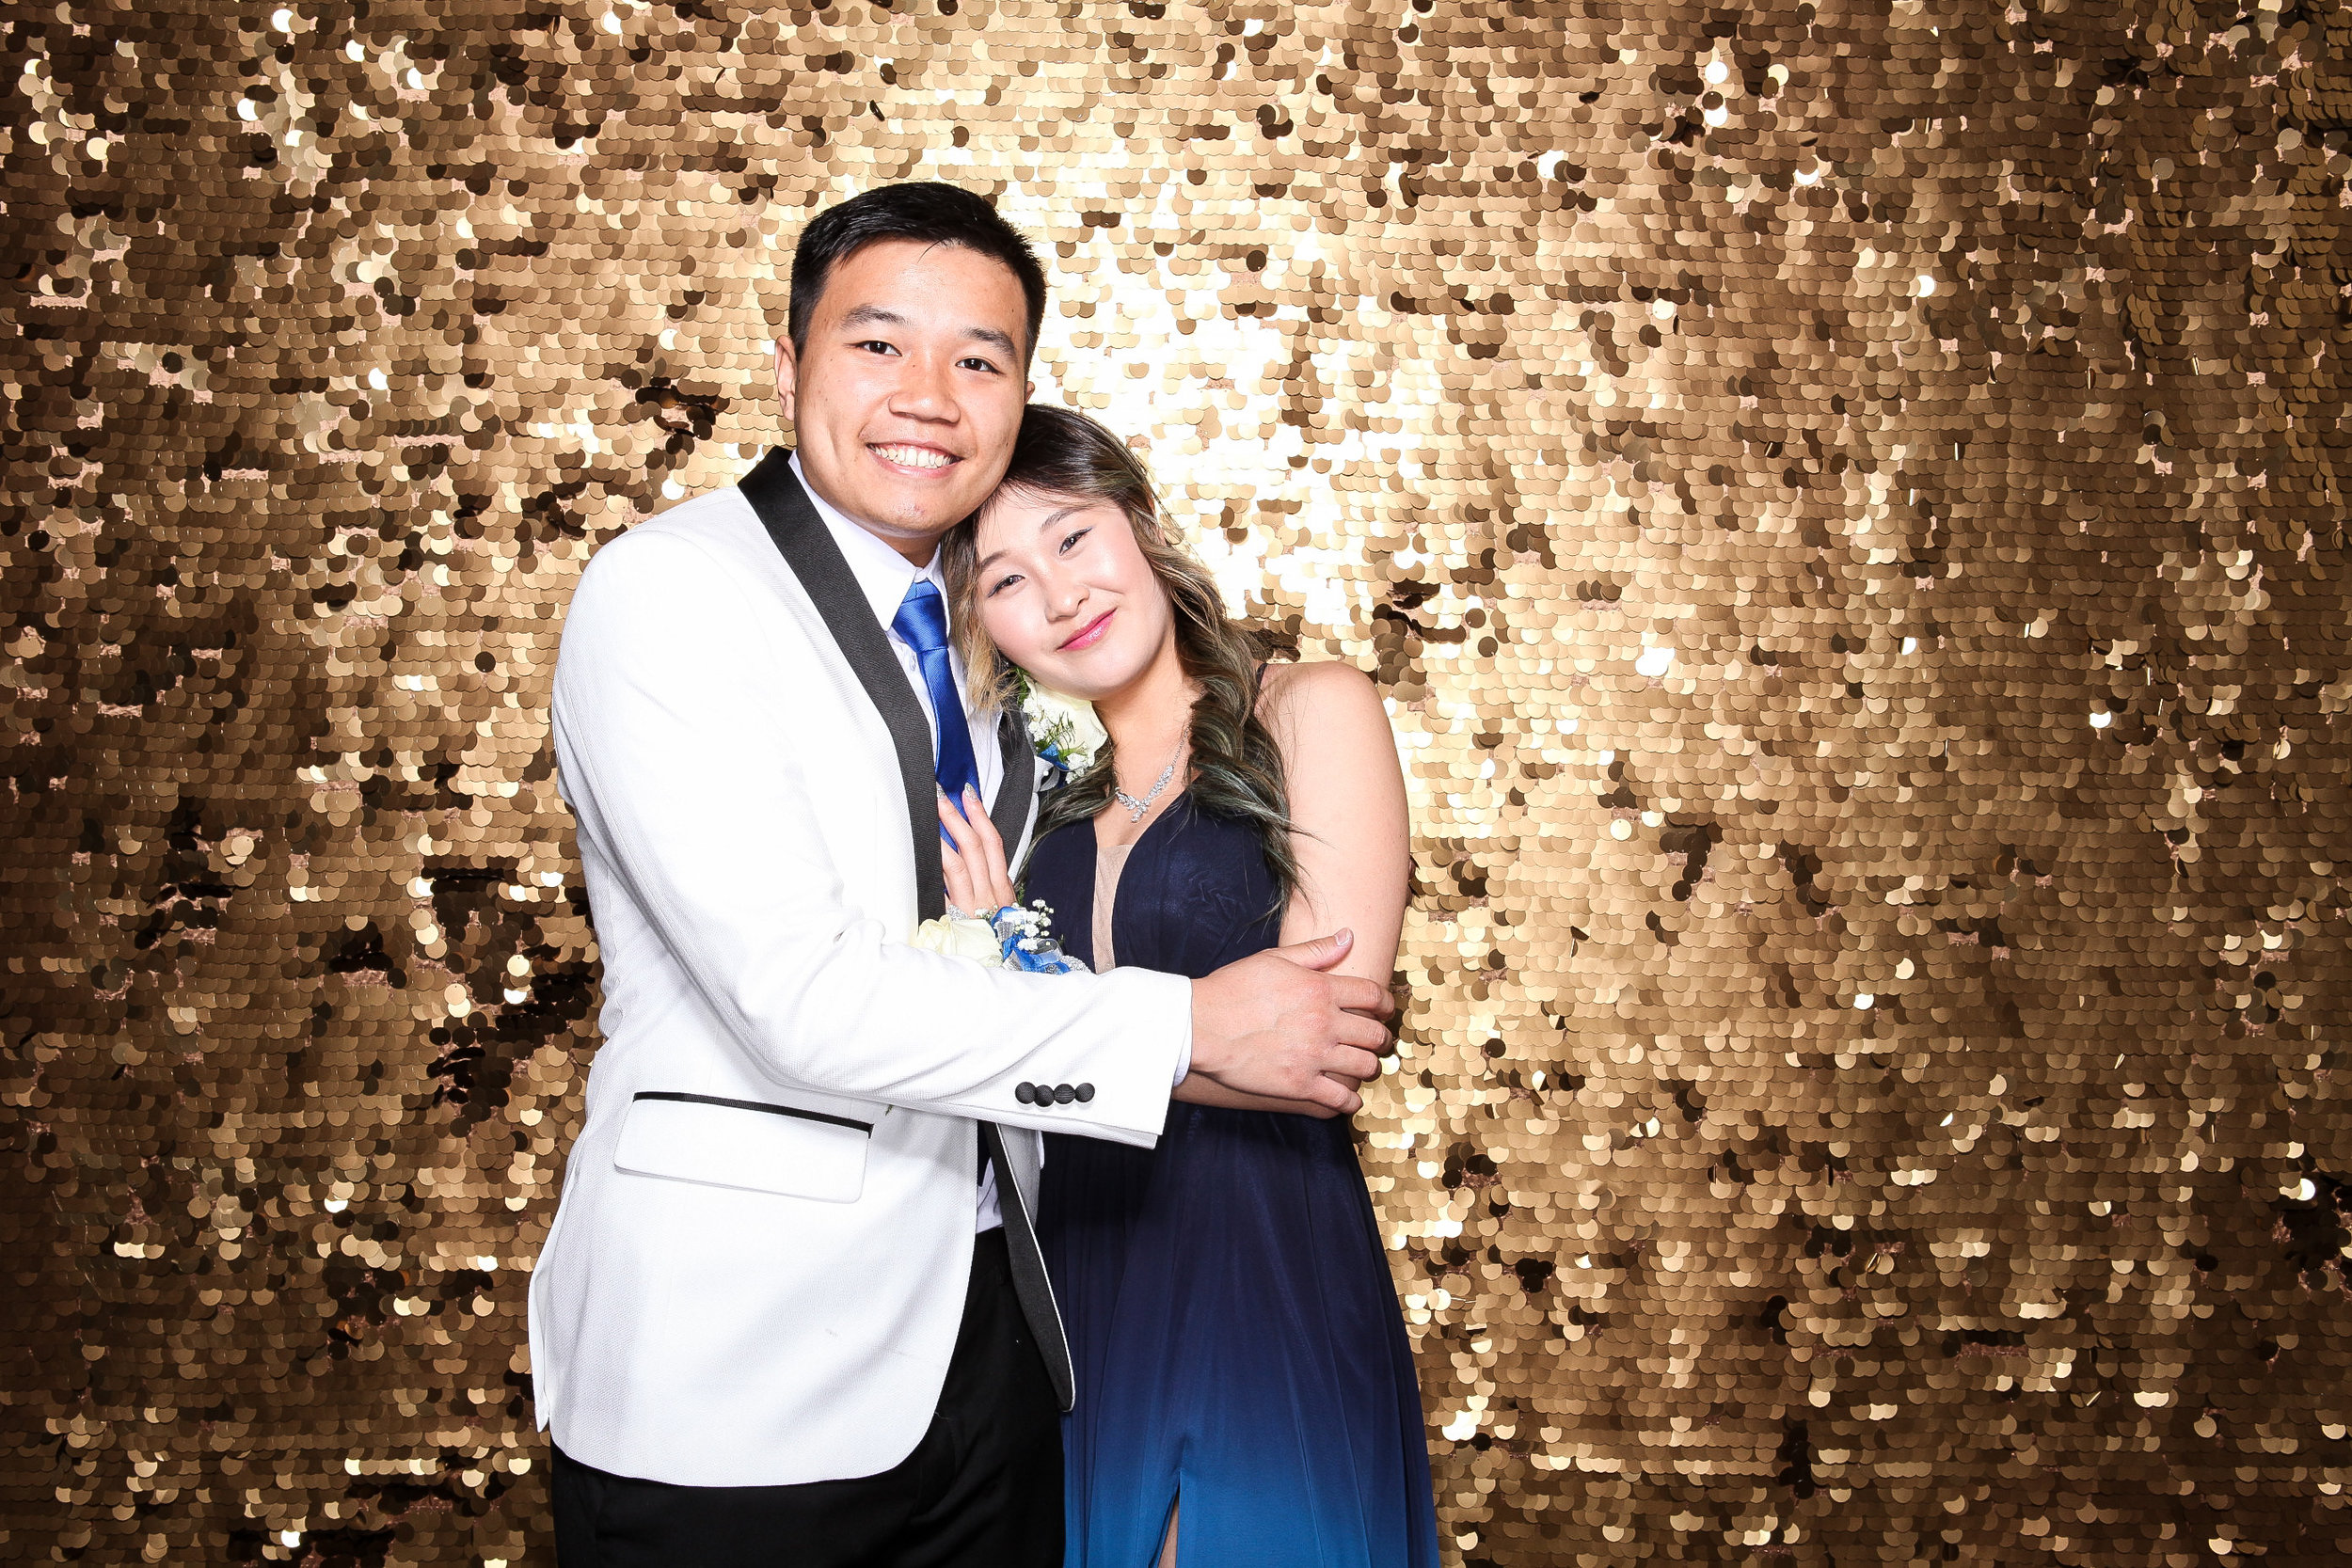 20190503_Adelphi_Senior_Formal-065.jpg